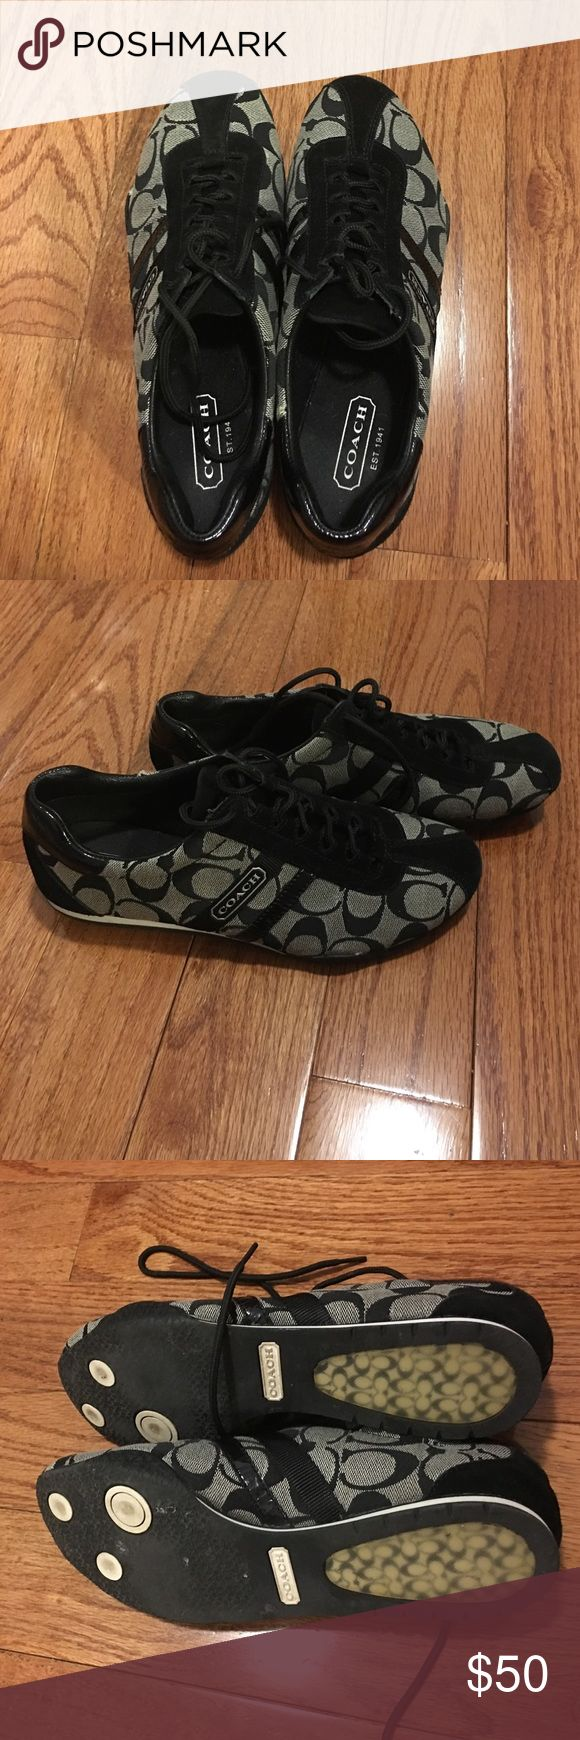 Black Coach Sneakers These are a pair of beautiful Coach sneakers. They are a size 8. They are in great condition. The rubber is slightly coming apart from the sides as shown in the photos but this can be fixed very easily with glue. Coach Shoes Sneakers